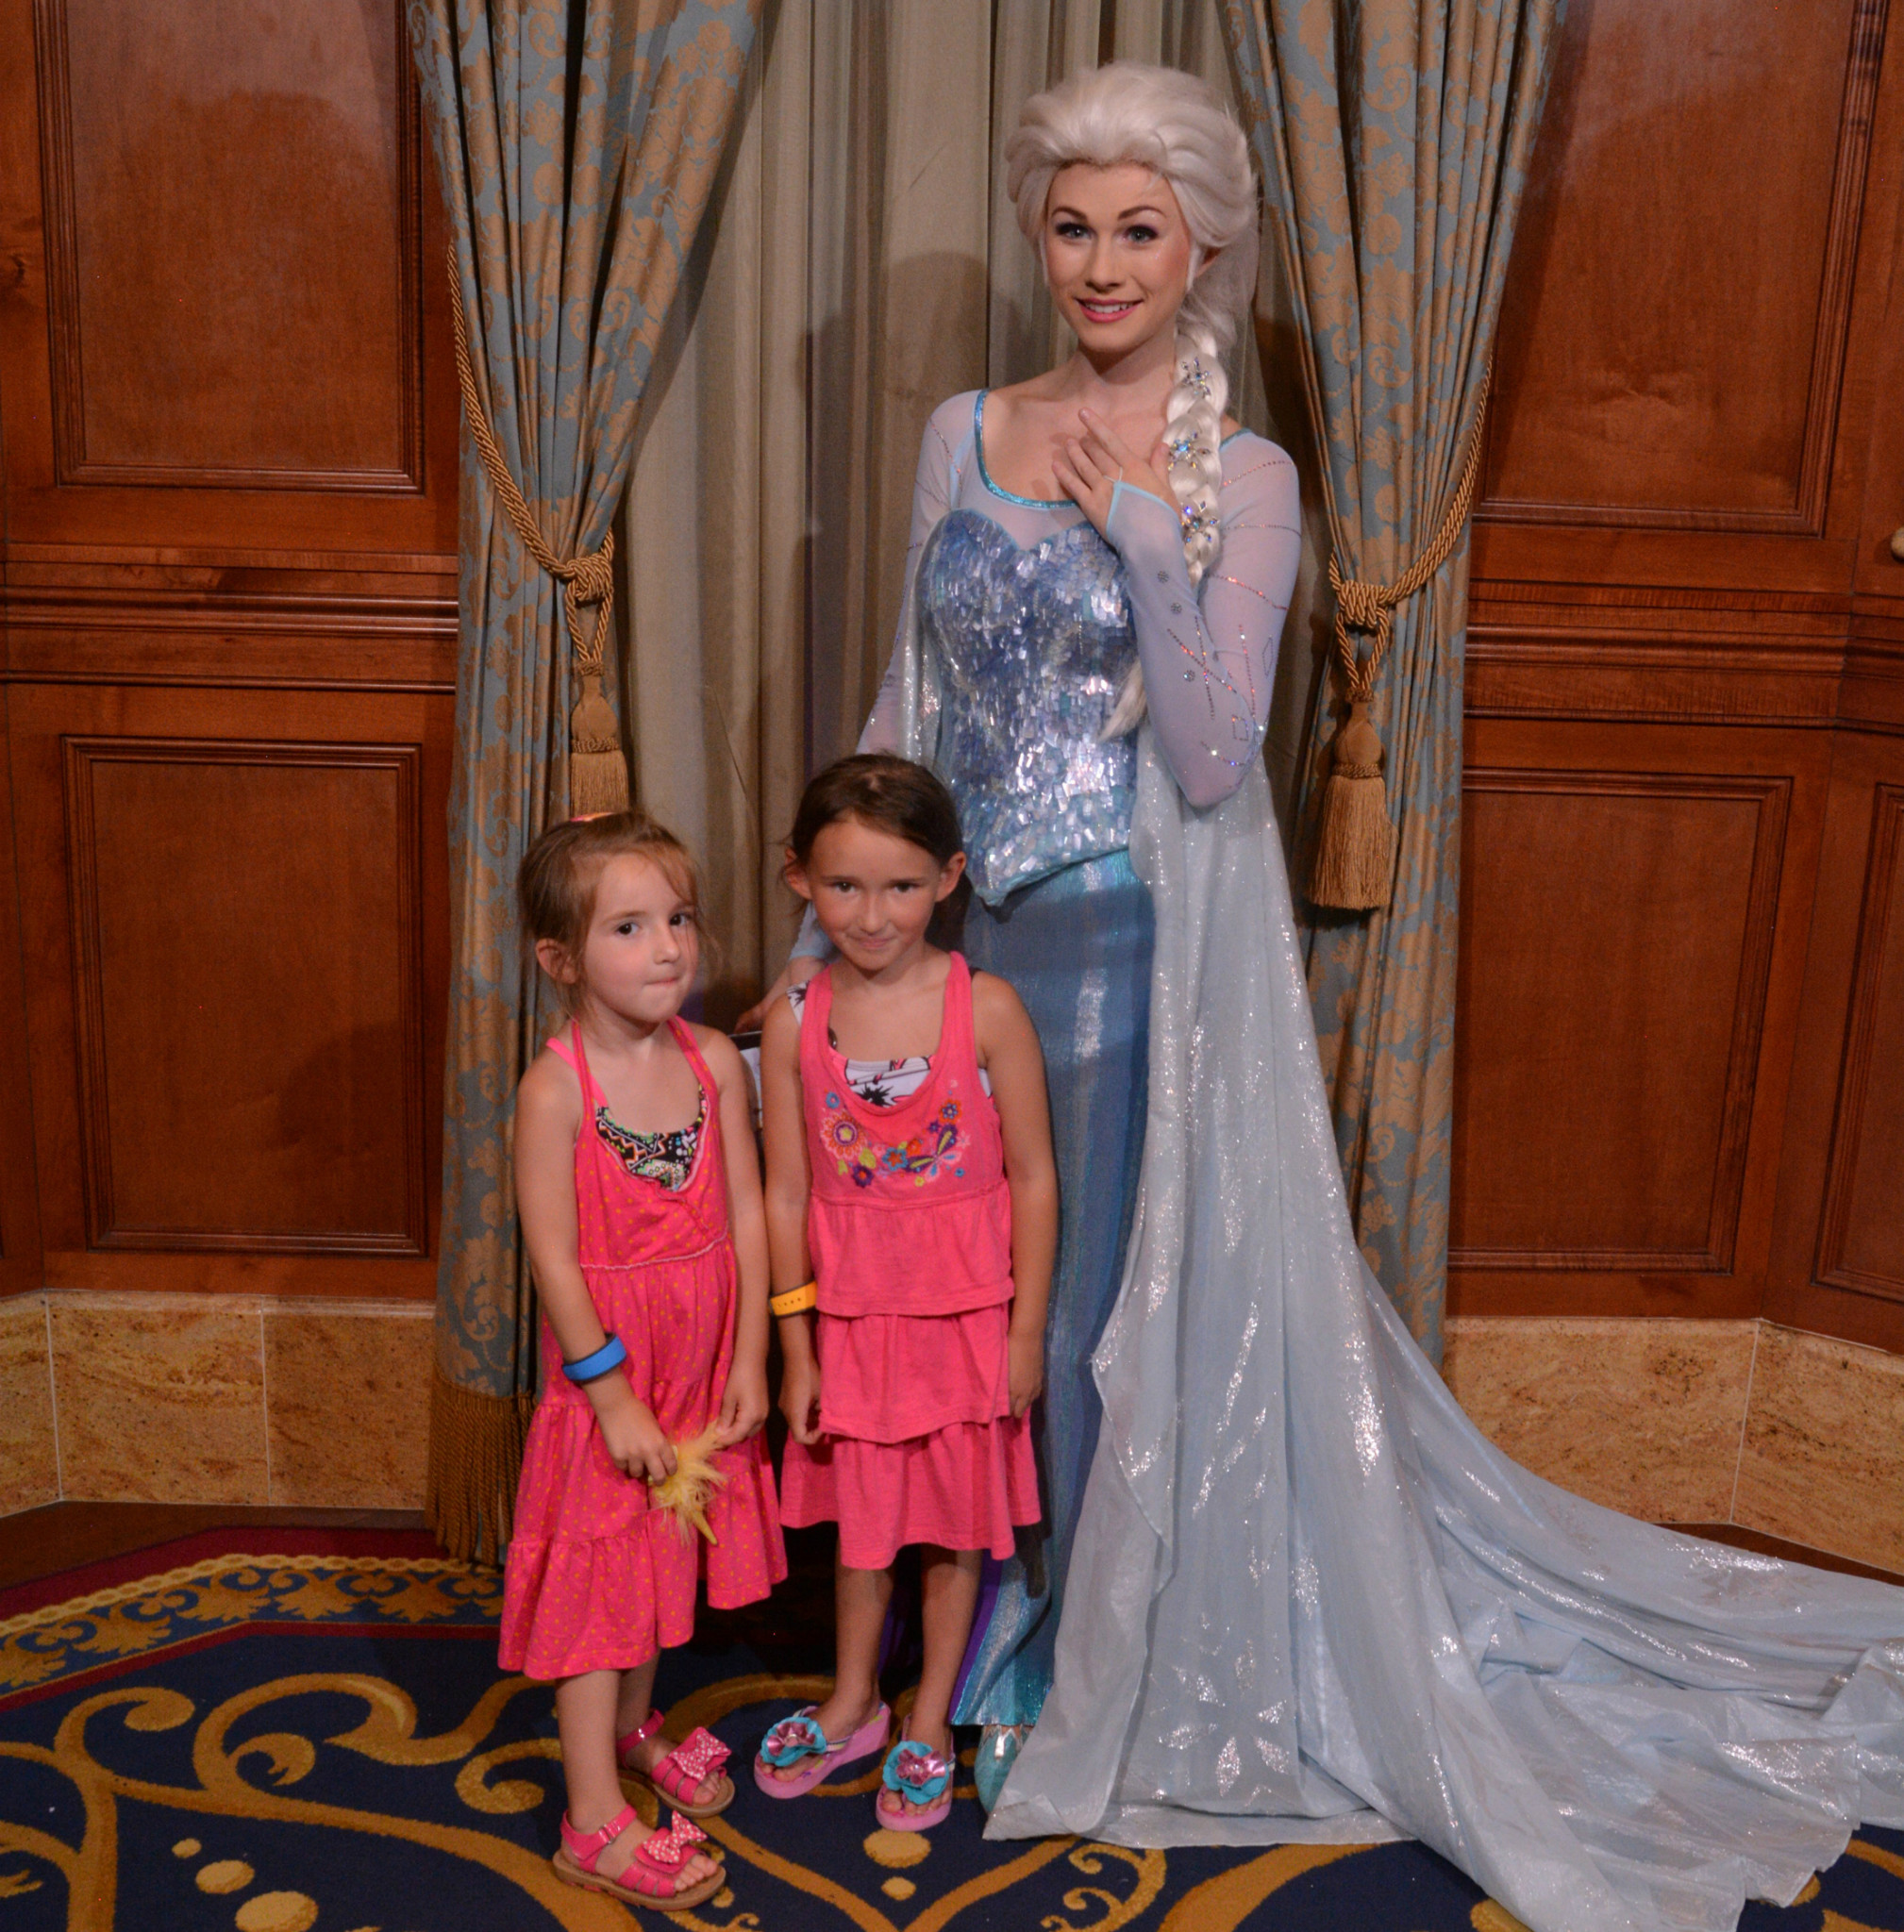 The Girls with Elsa at Magic Kingdom